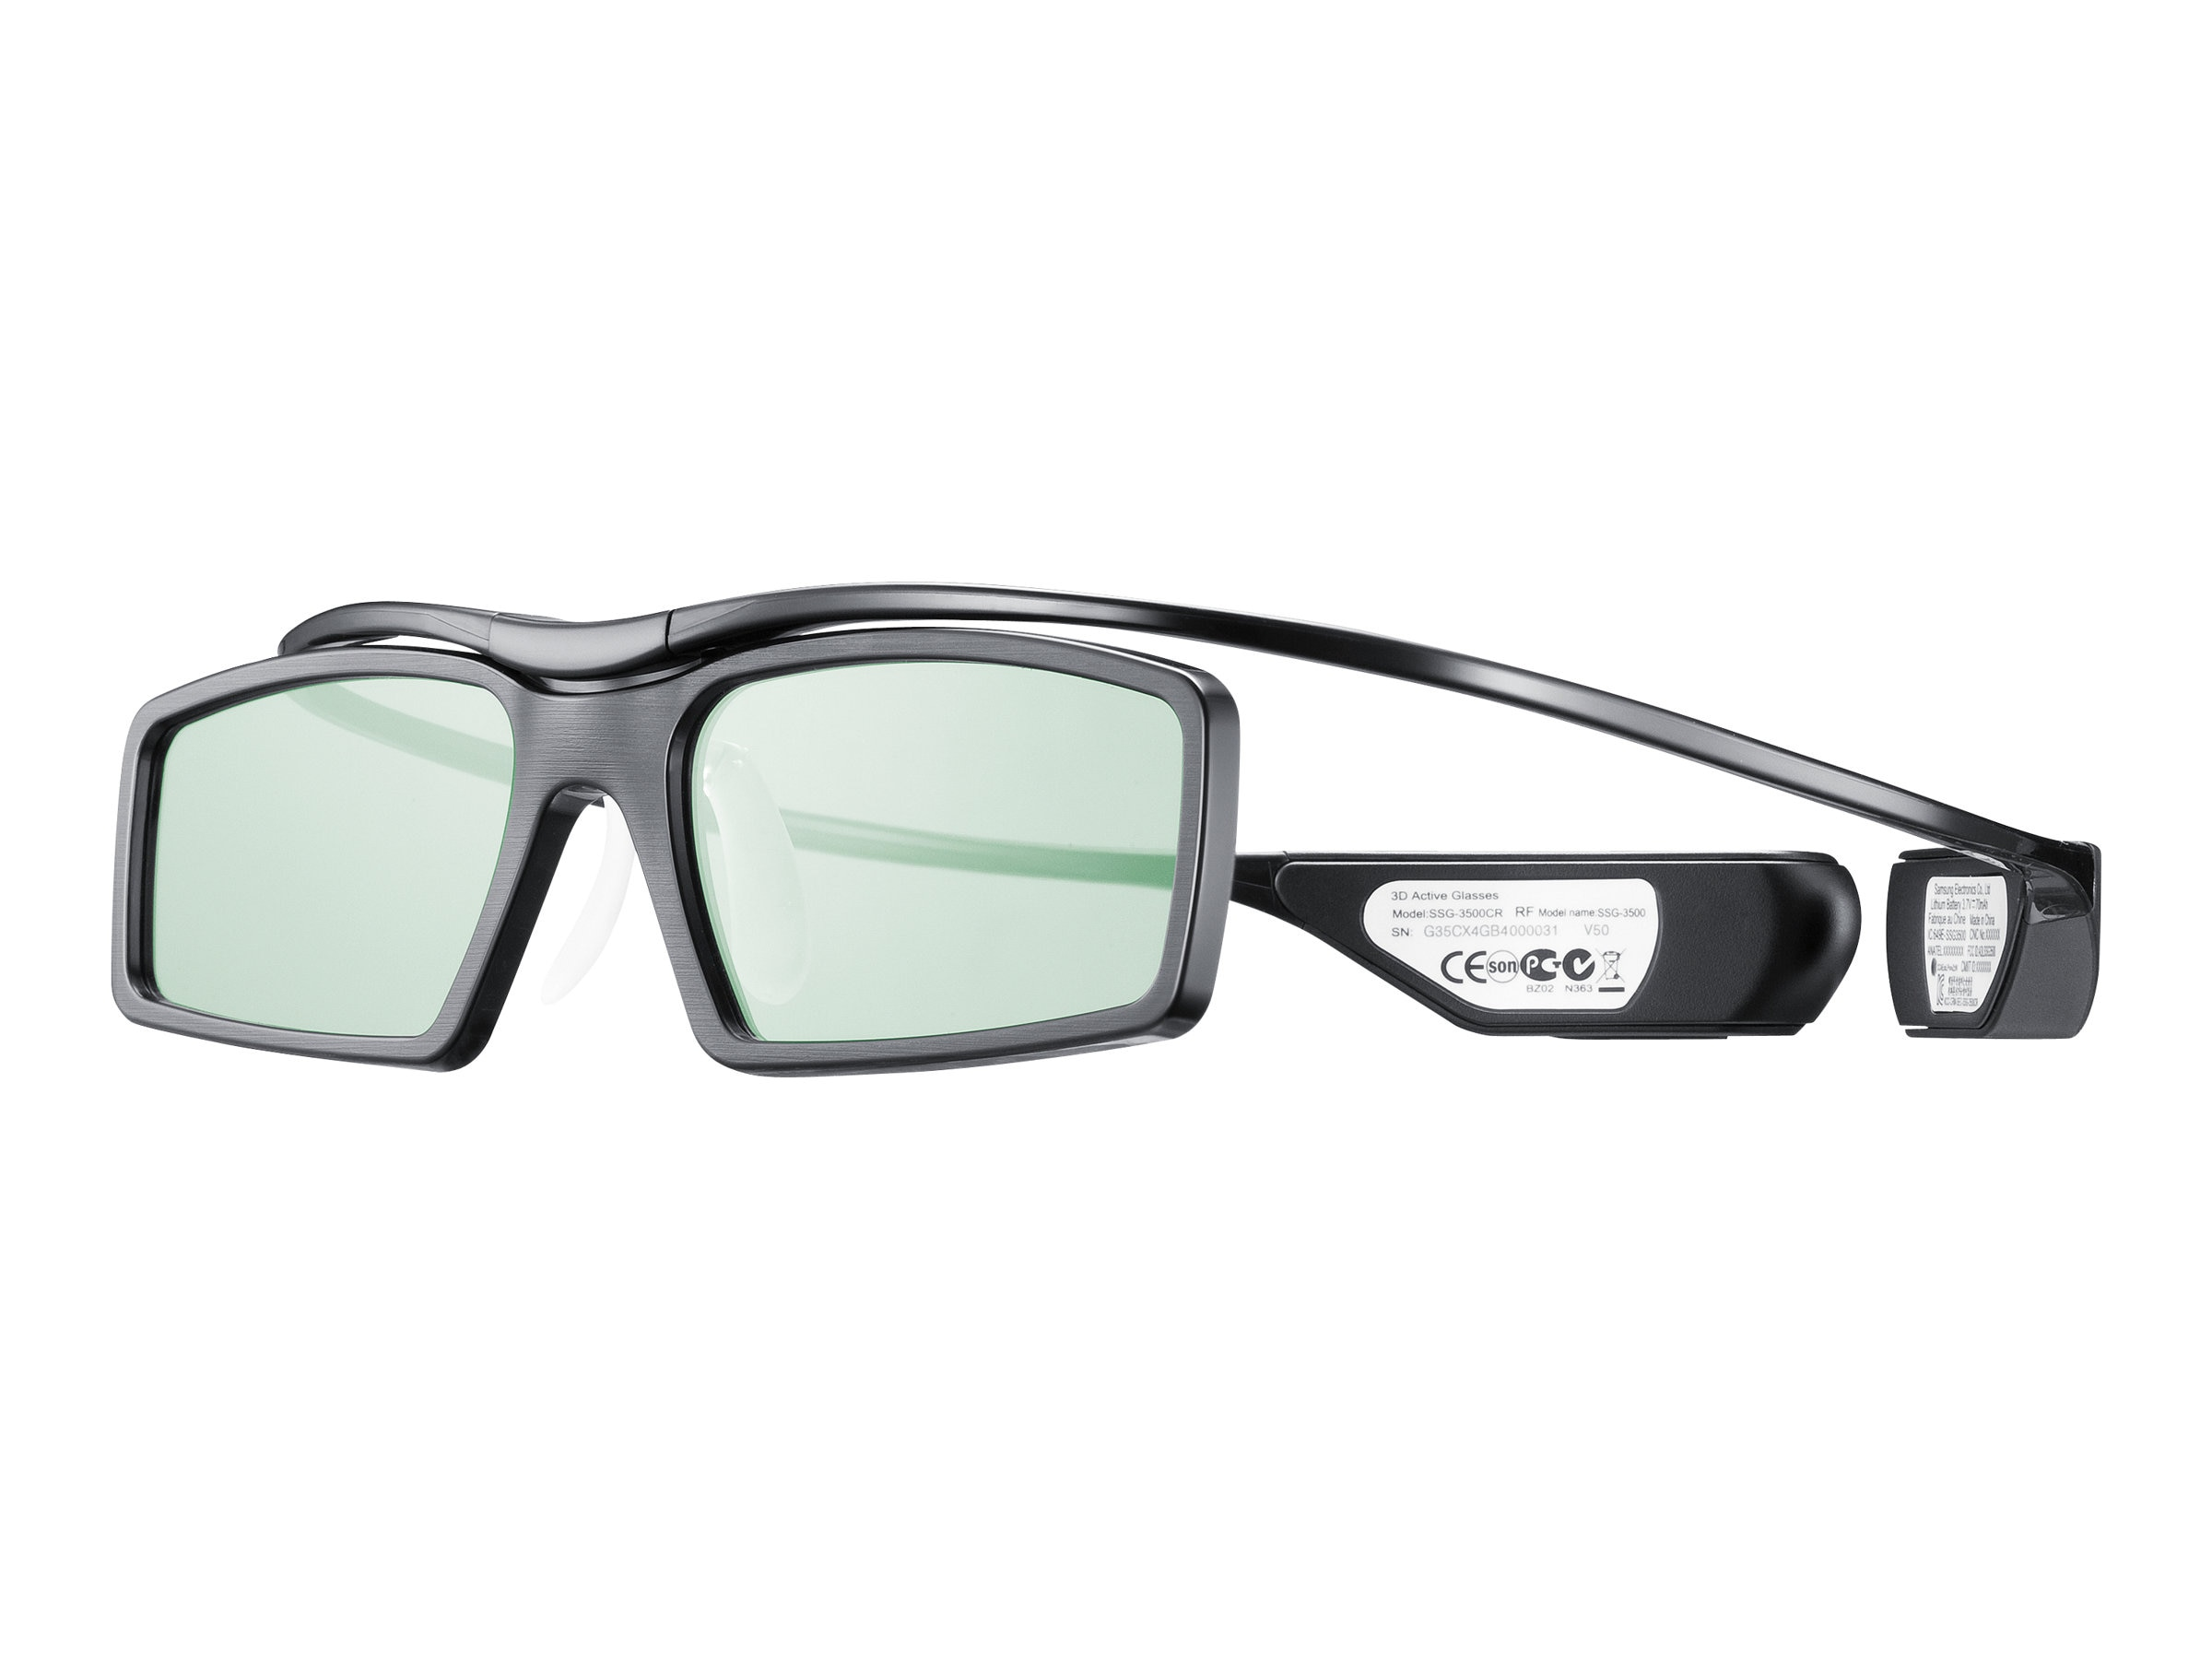 Samsung Rechargeable 3D Glasses, SSG-3570CR/ZA, 16767994, Monitor & Display Accessories